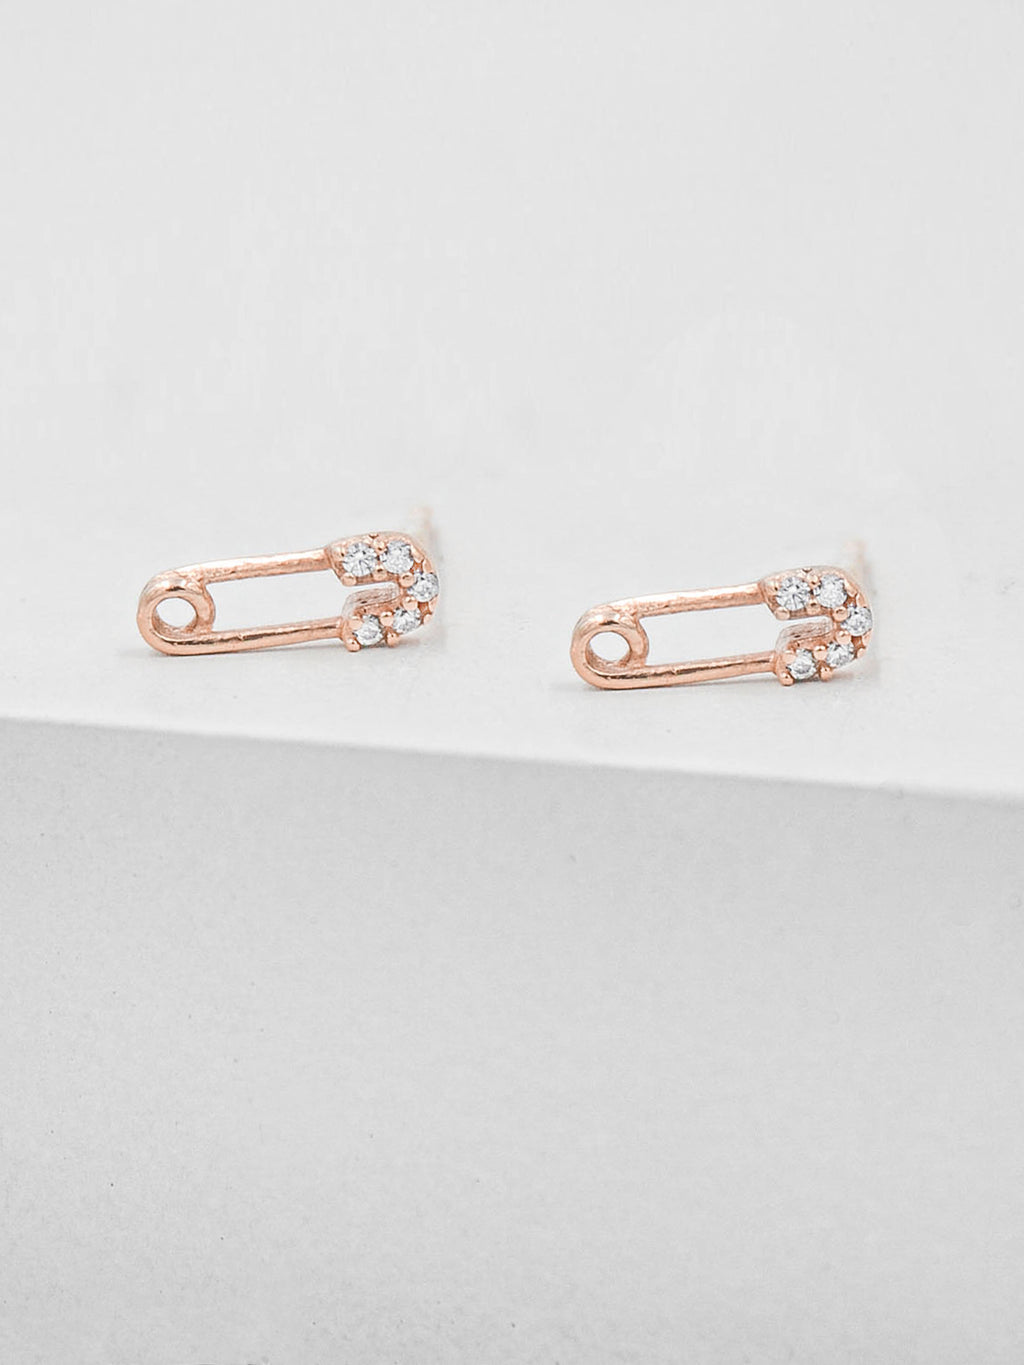 Rose Gold Plated Brass Safety Pin design with Cubic Zirconia CZ Stones Stud Earrings by The Faint hearted Jewelry